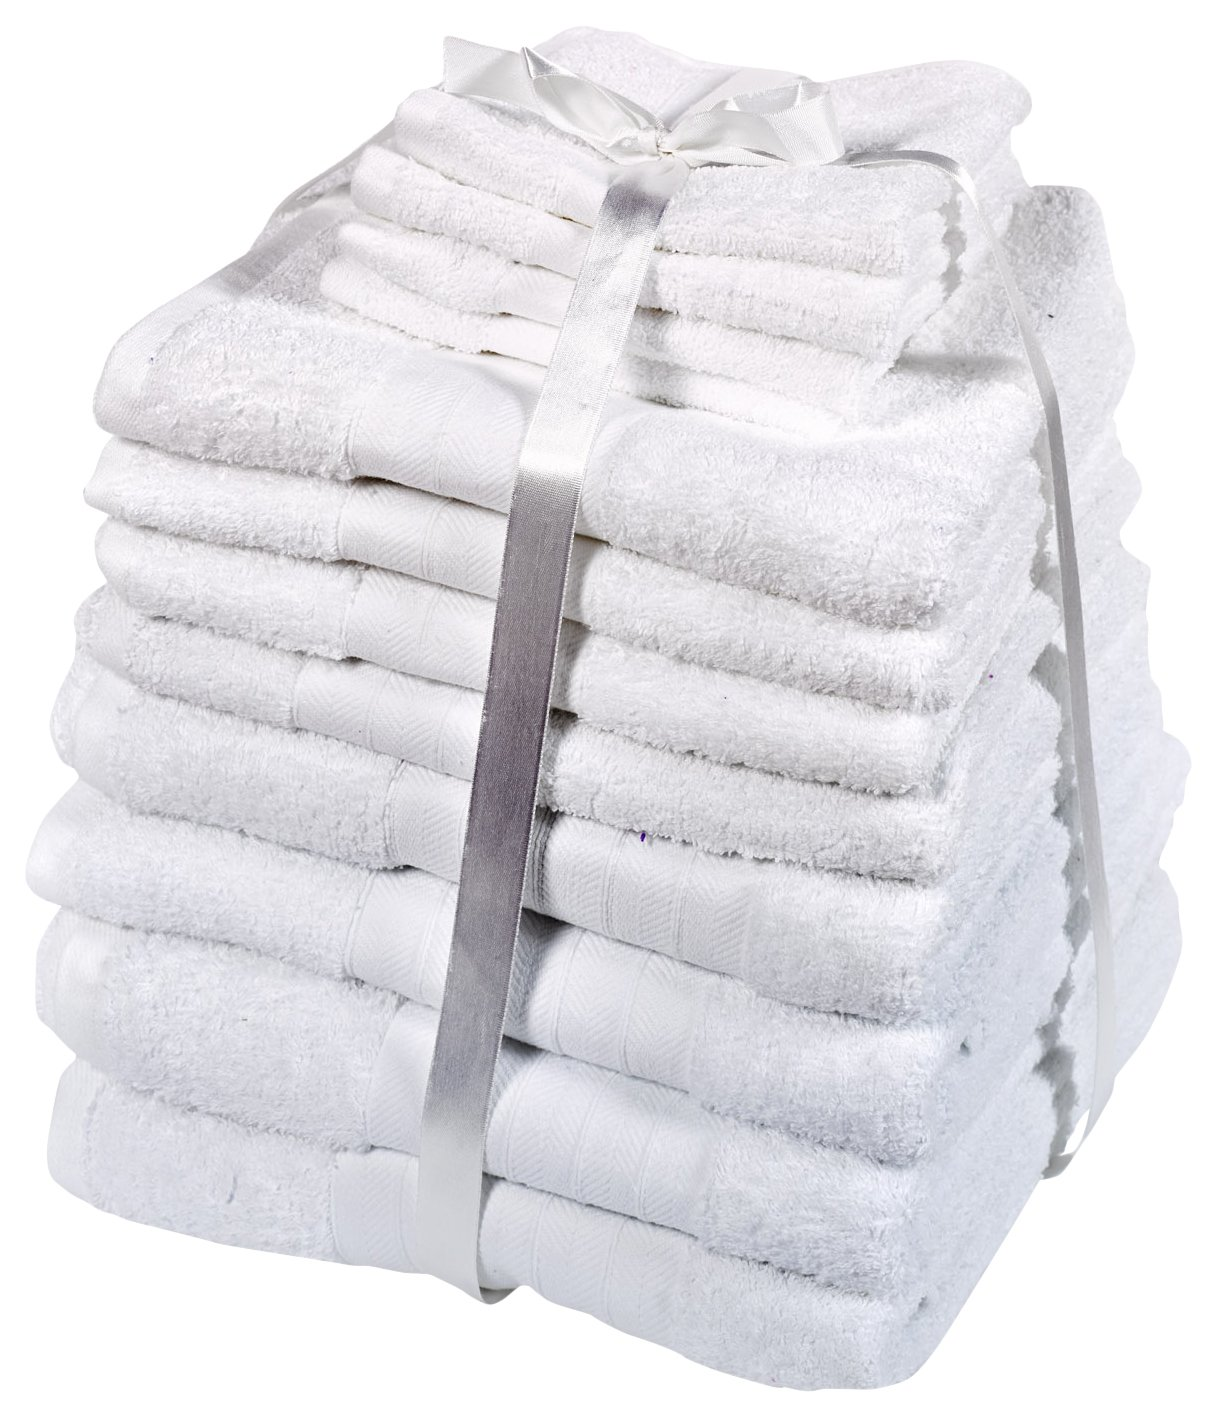 Luxuriously Soft 12 Piece Towel Bale Gift Set- 100% Egyptian Cotton White by Dreamscene